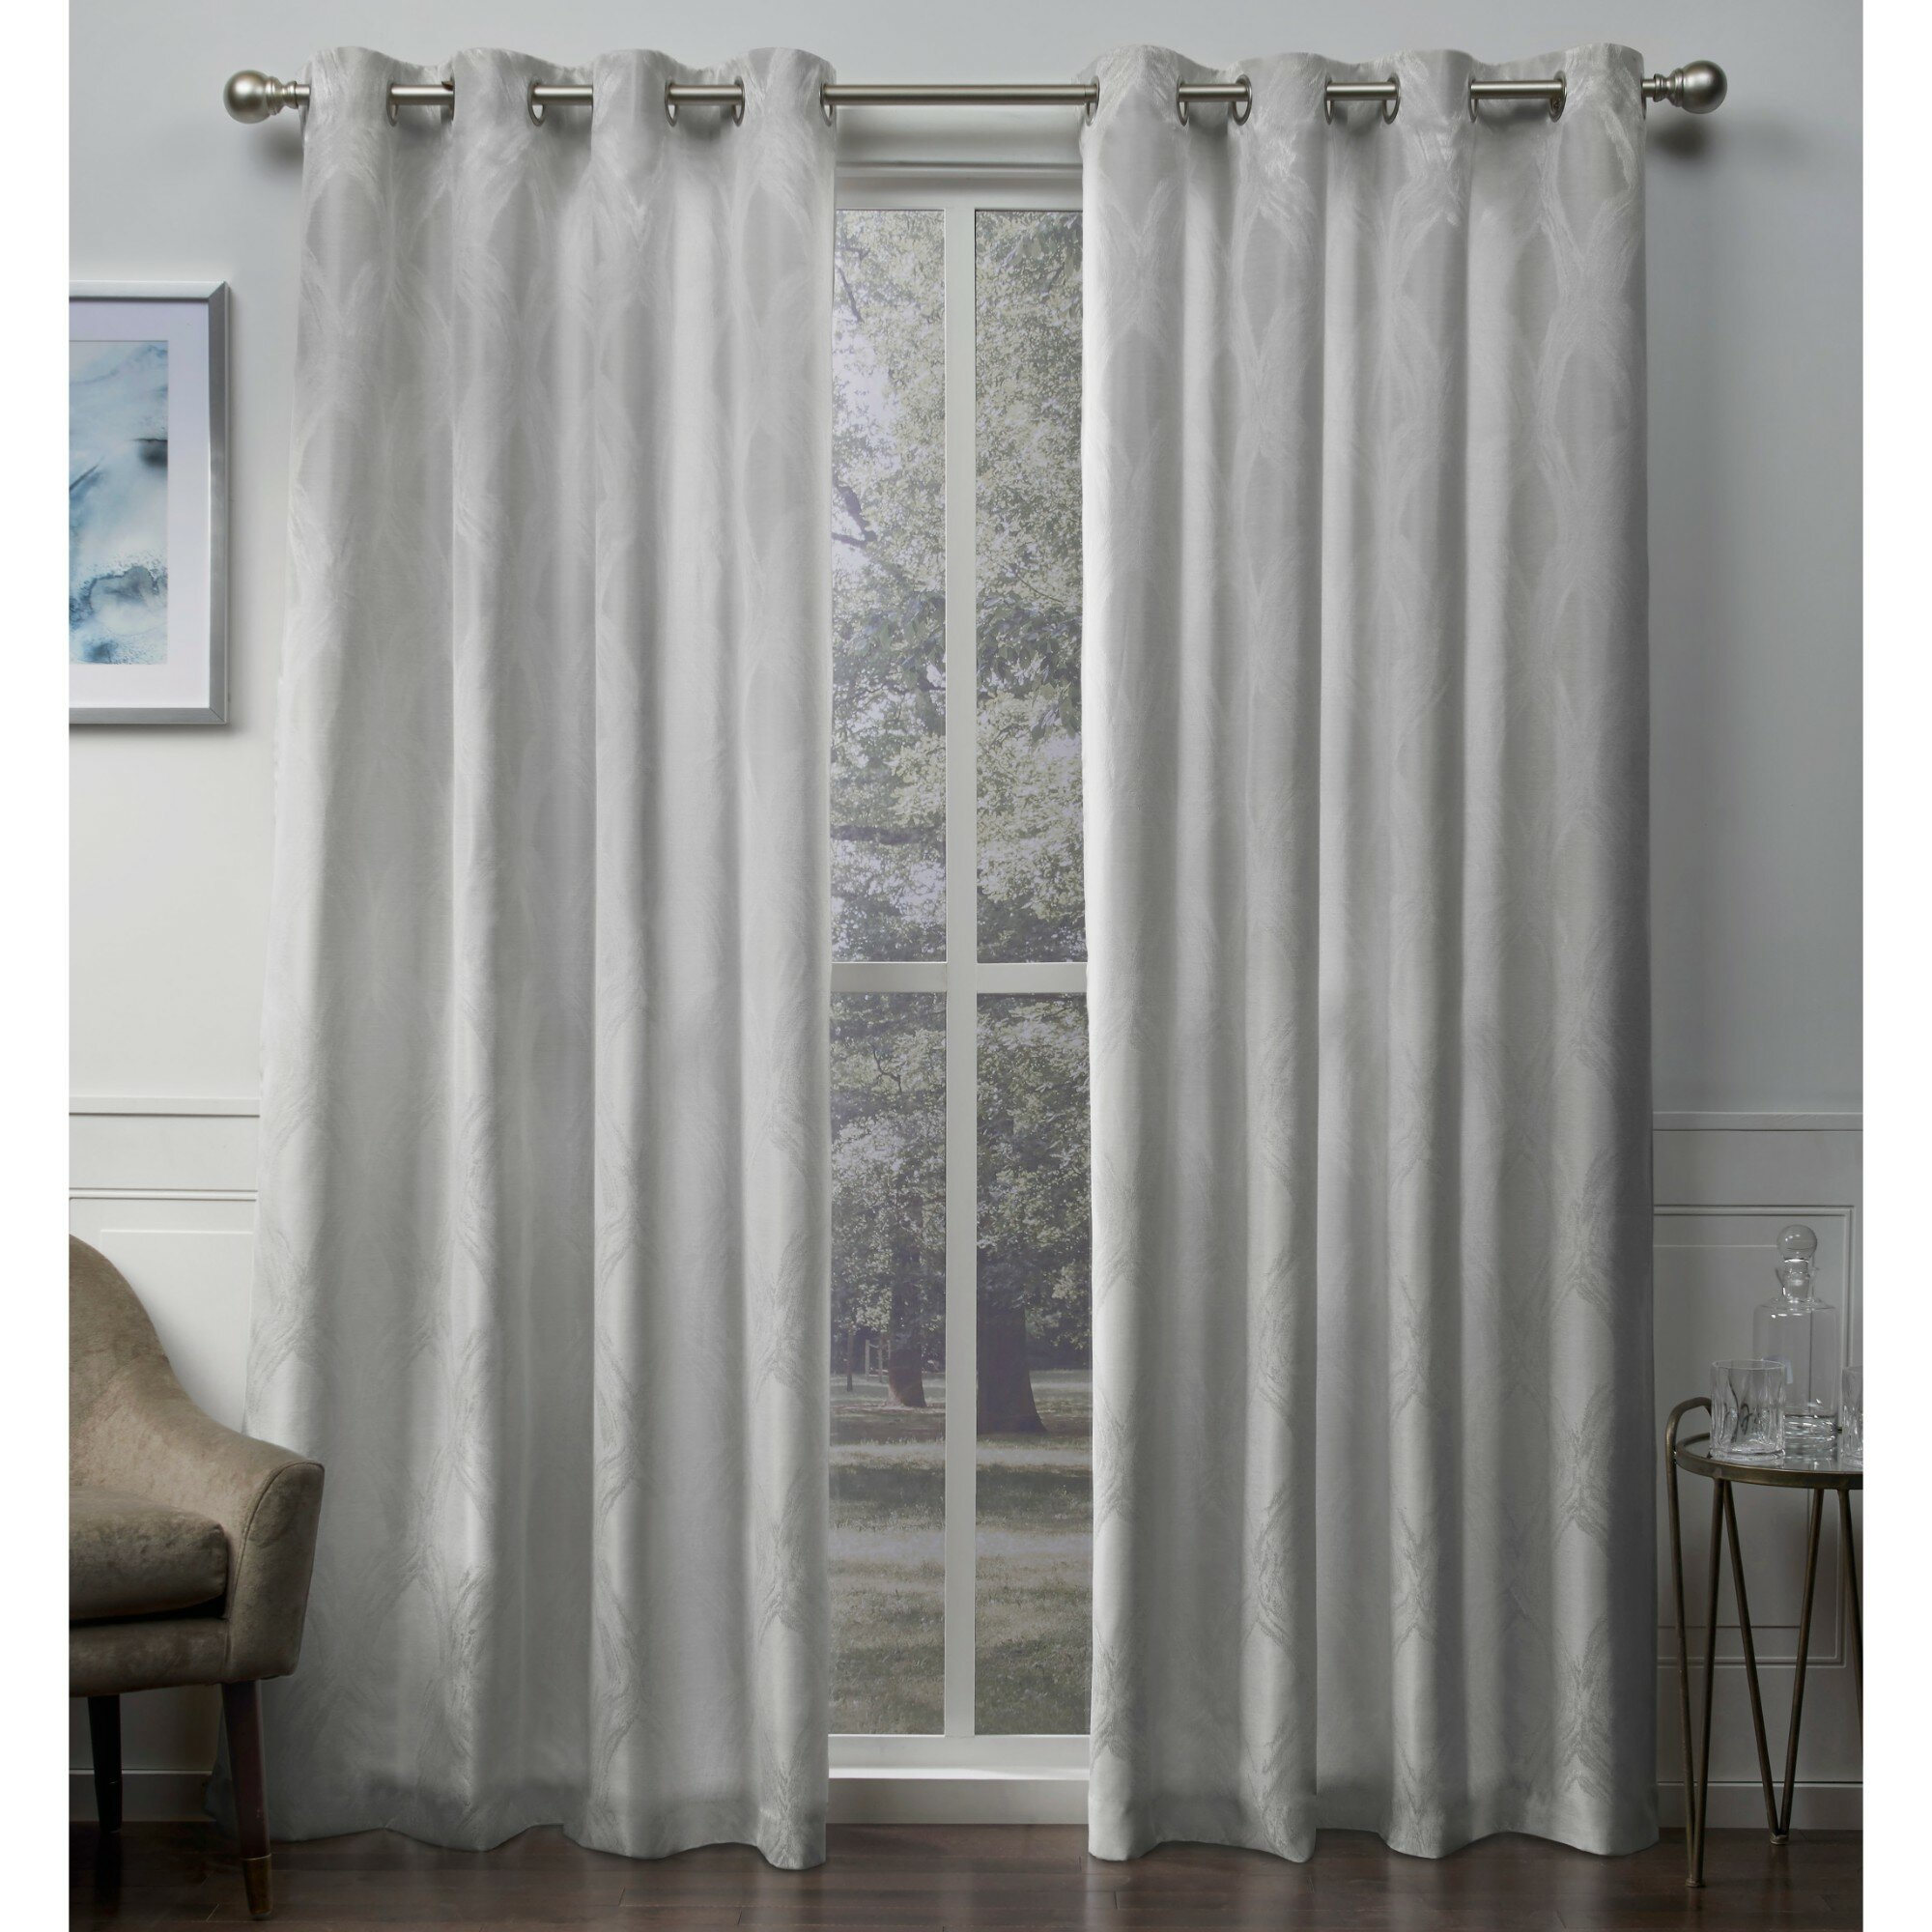 Vallejo Textured Linen Jacquard Geometric Grommet Curtain Panels Inside Thermal Textured Linen Grommet Top Curtain Panel Pairs (View 16 of 30)